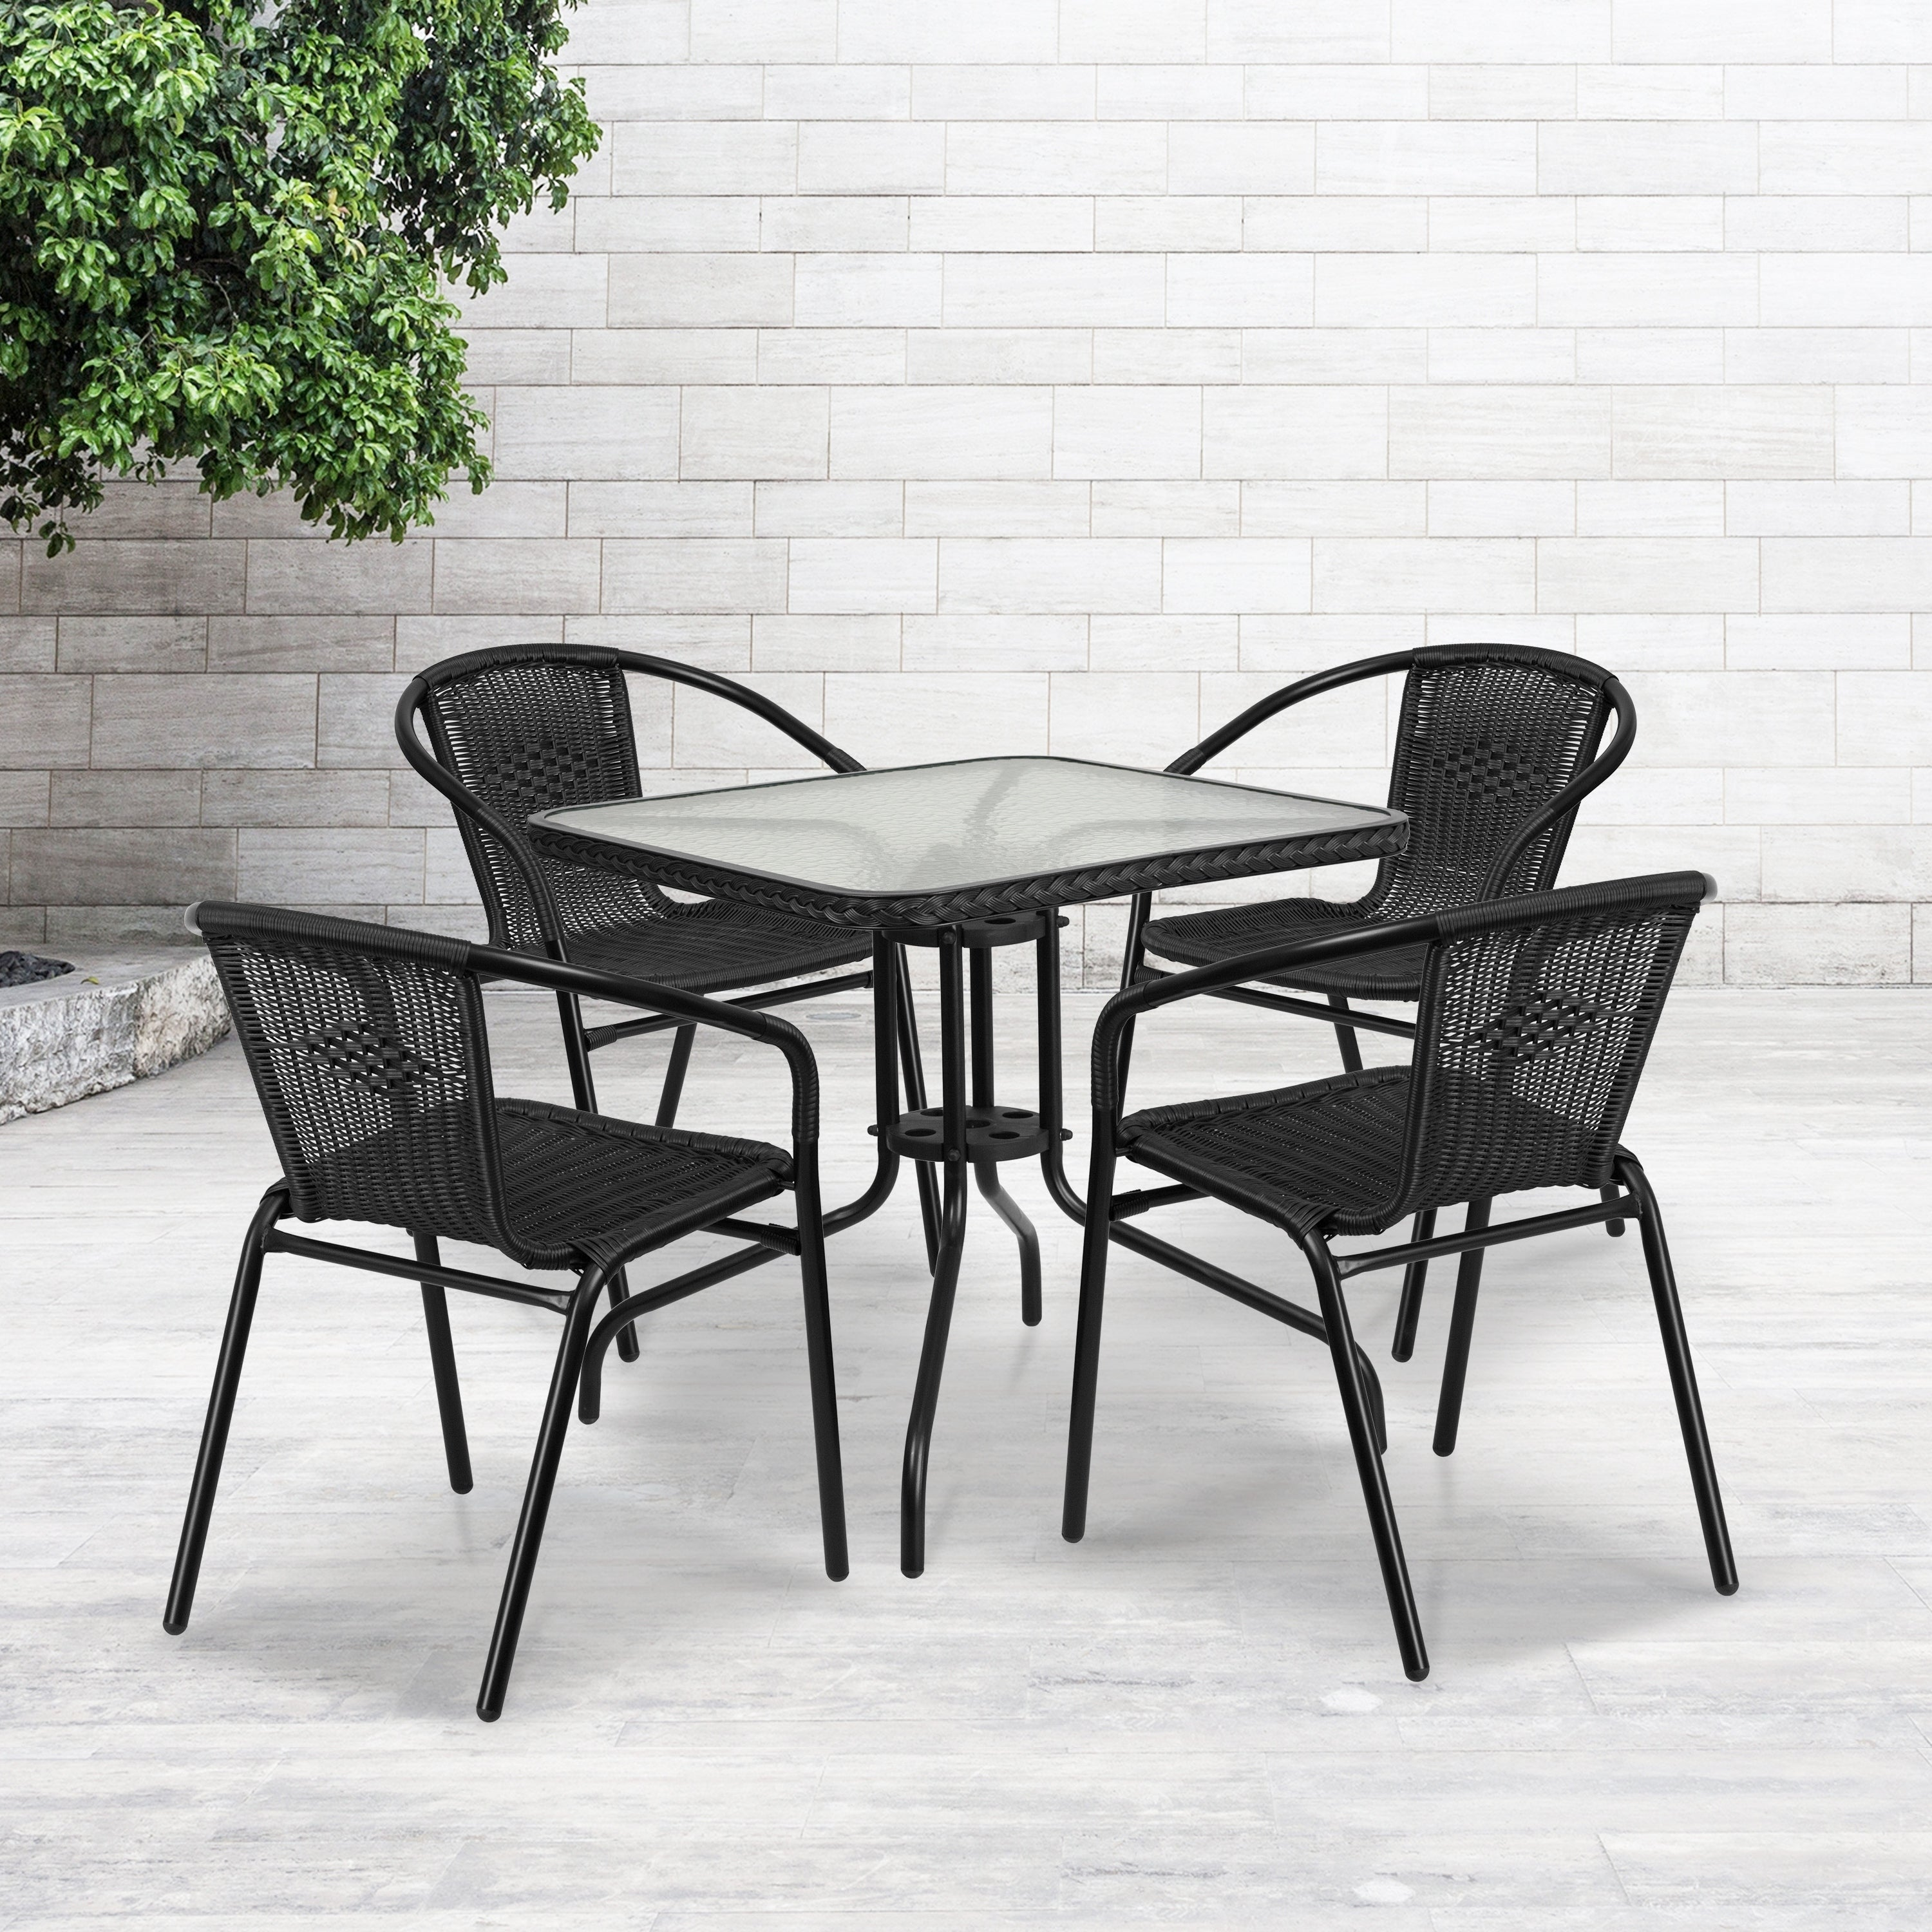 Superb Buy Outdoor Dining Sets Online At Overstock Our Best Patio Caraccident5 Cool Chair Designs And Ideas Caraccident5Info